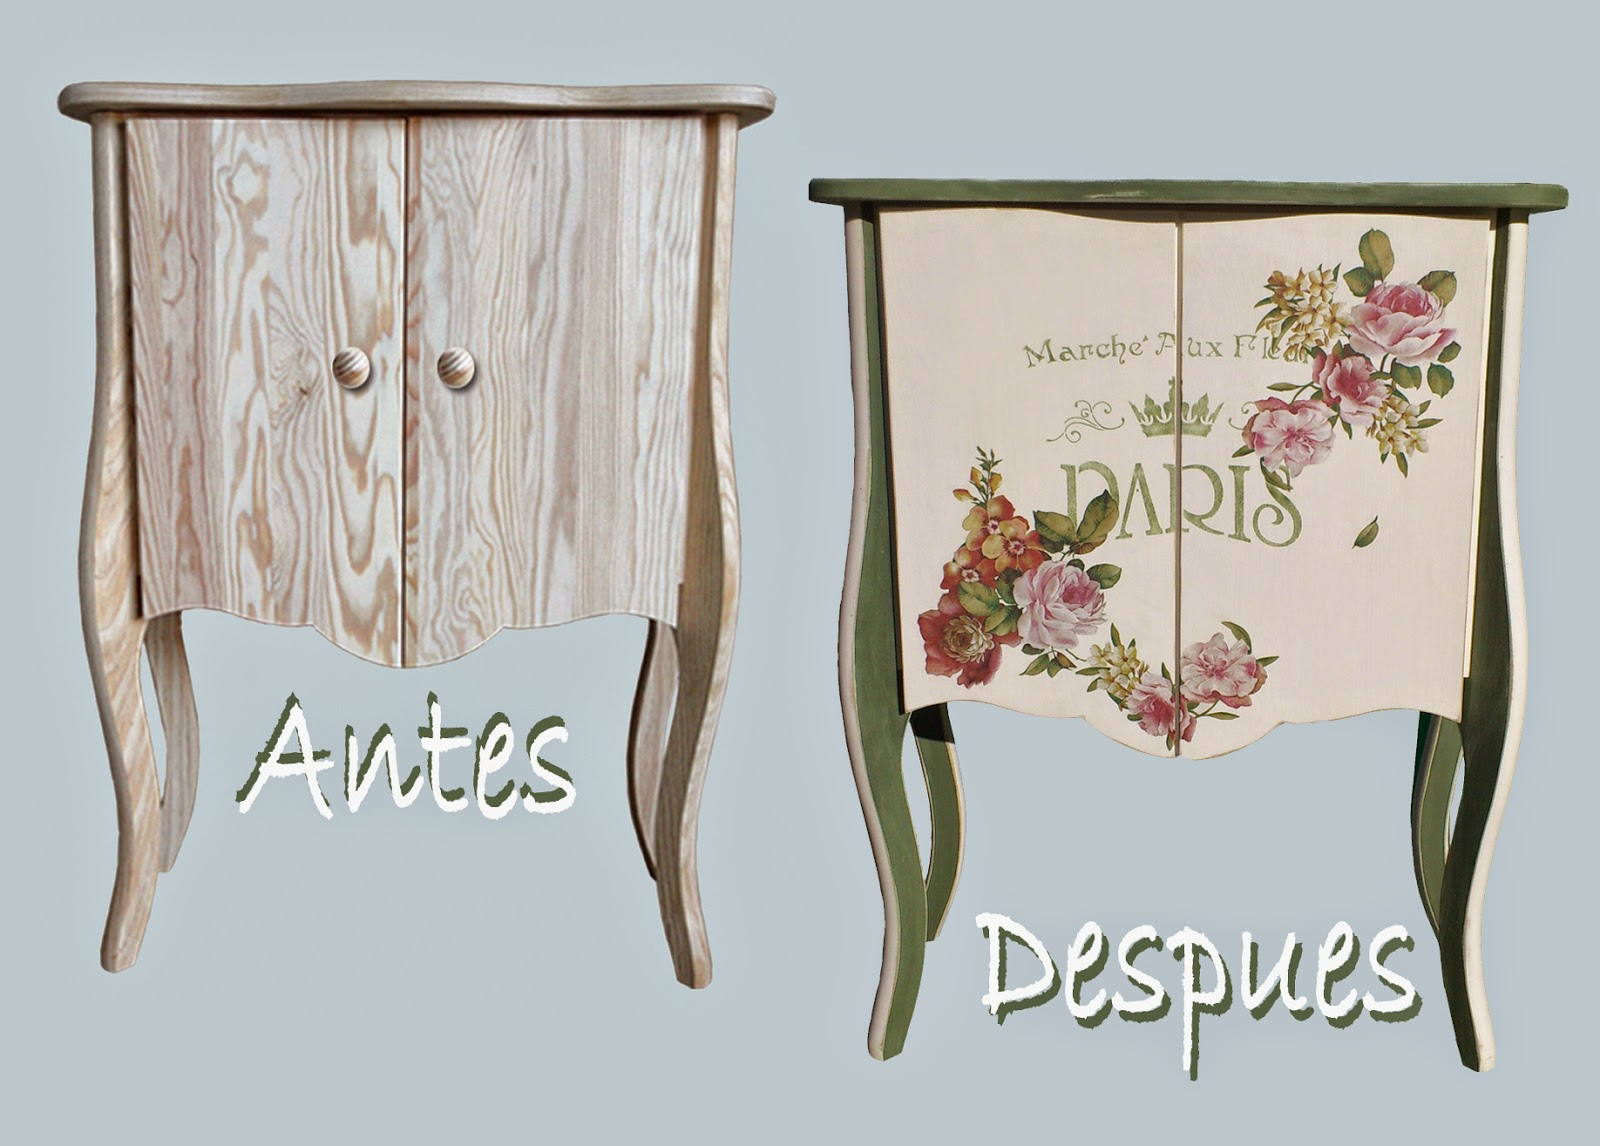 El chalky blog mueble bar con pintura chalky americana for Papel de arroz para decorar muebles